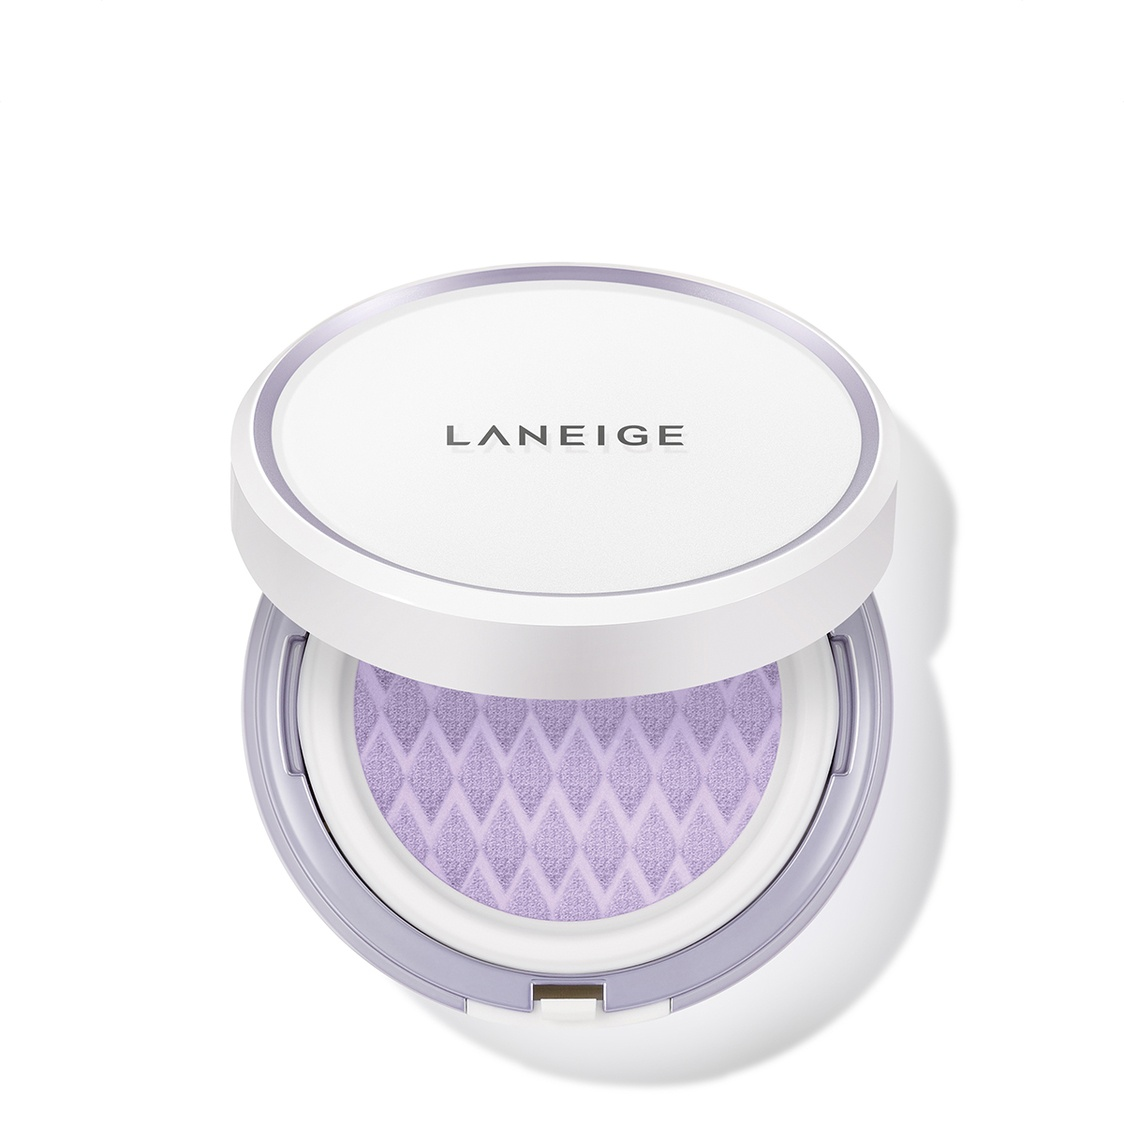 Laneige Skin Veil Base Cushion SPF14 PA